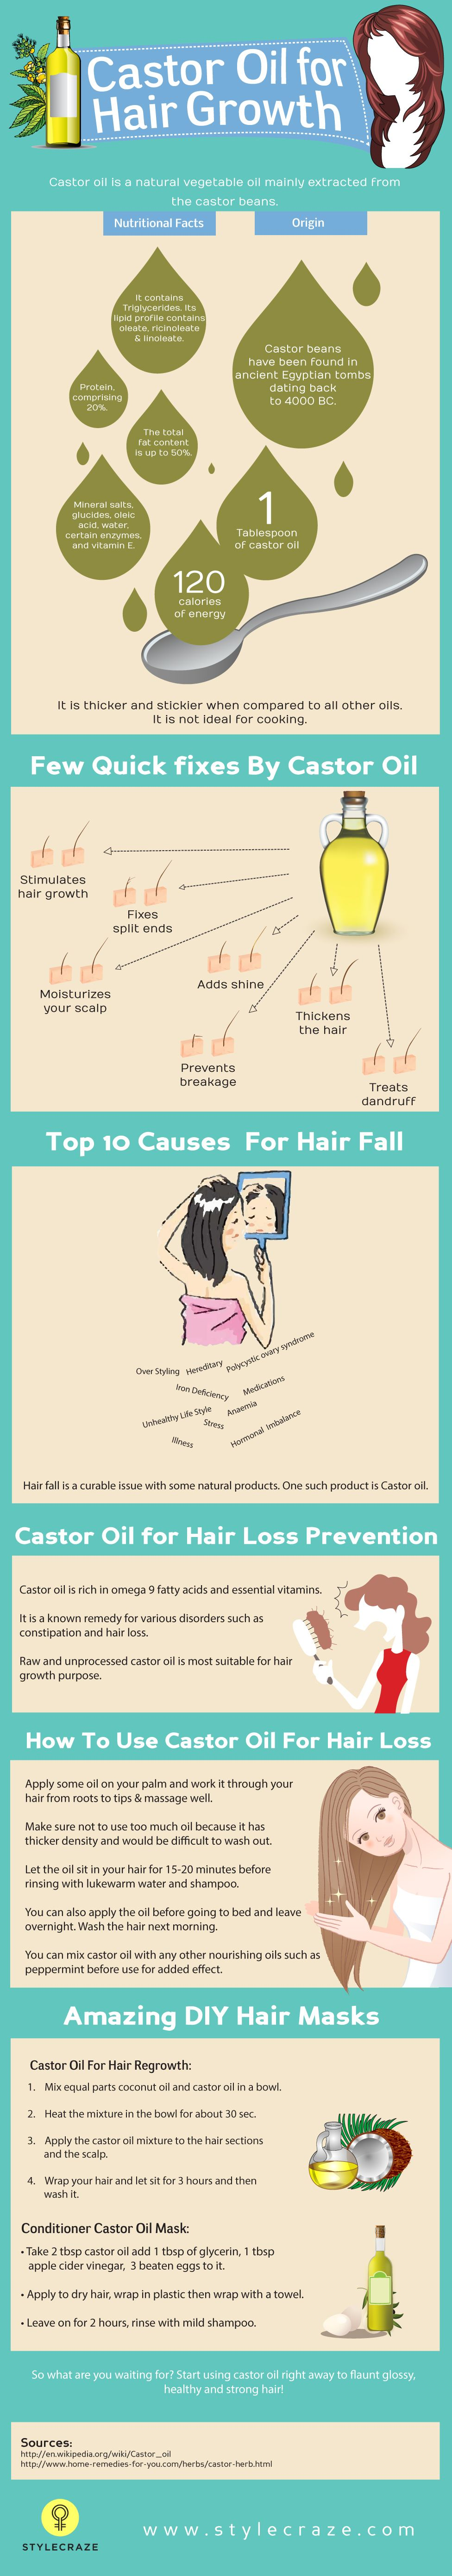 Castor oil for hair growth how to use it the right way castor